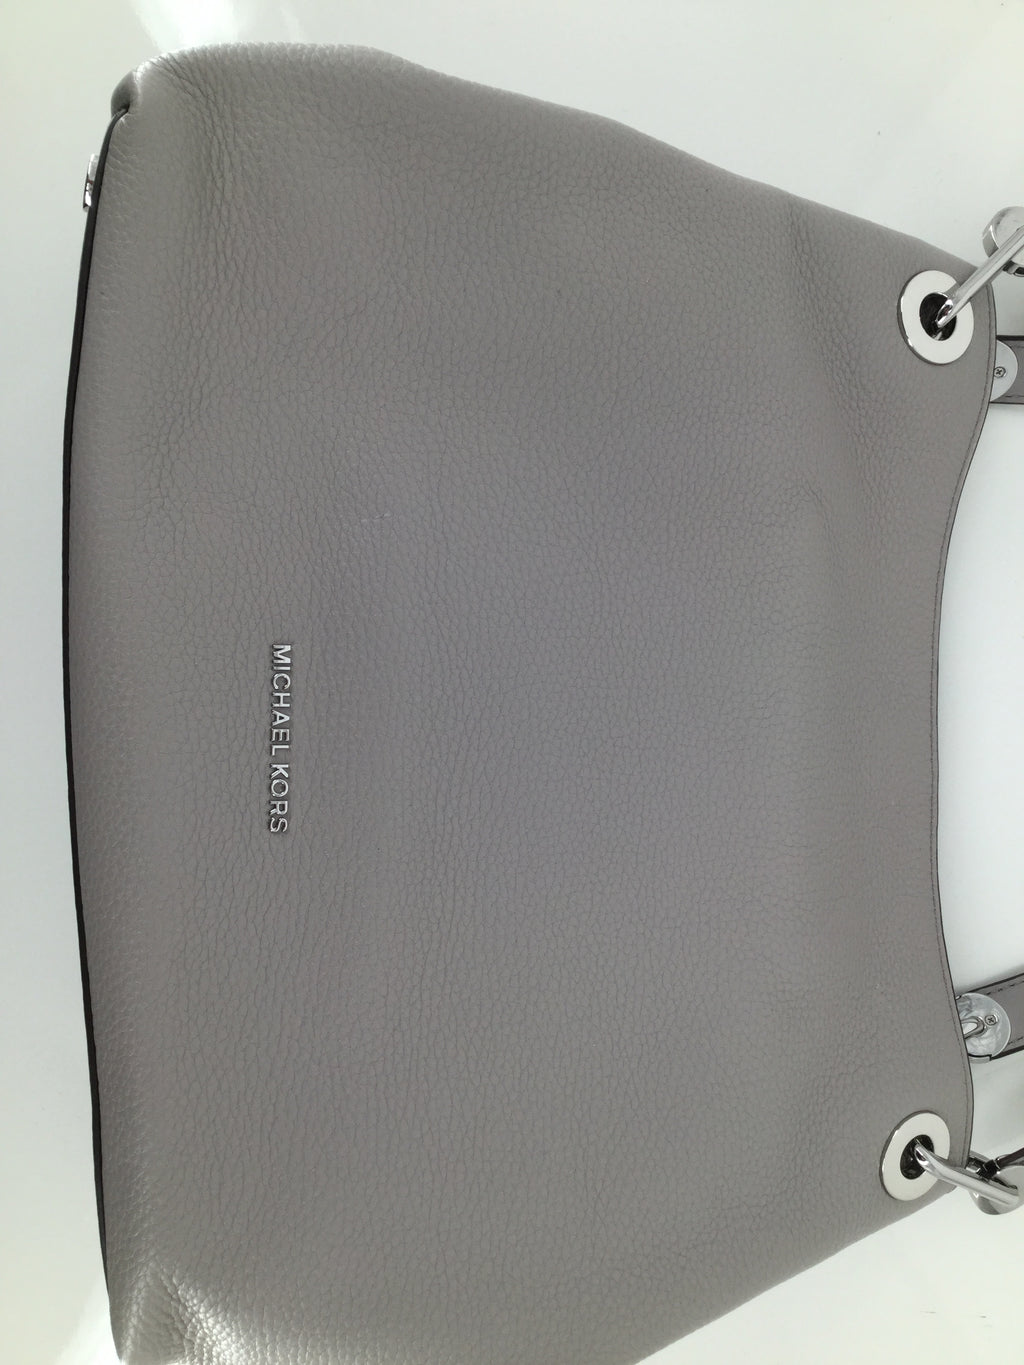 MICHAEL KORS RAVEN LARGE HANDBAG